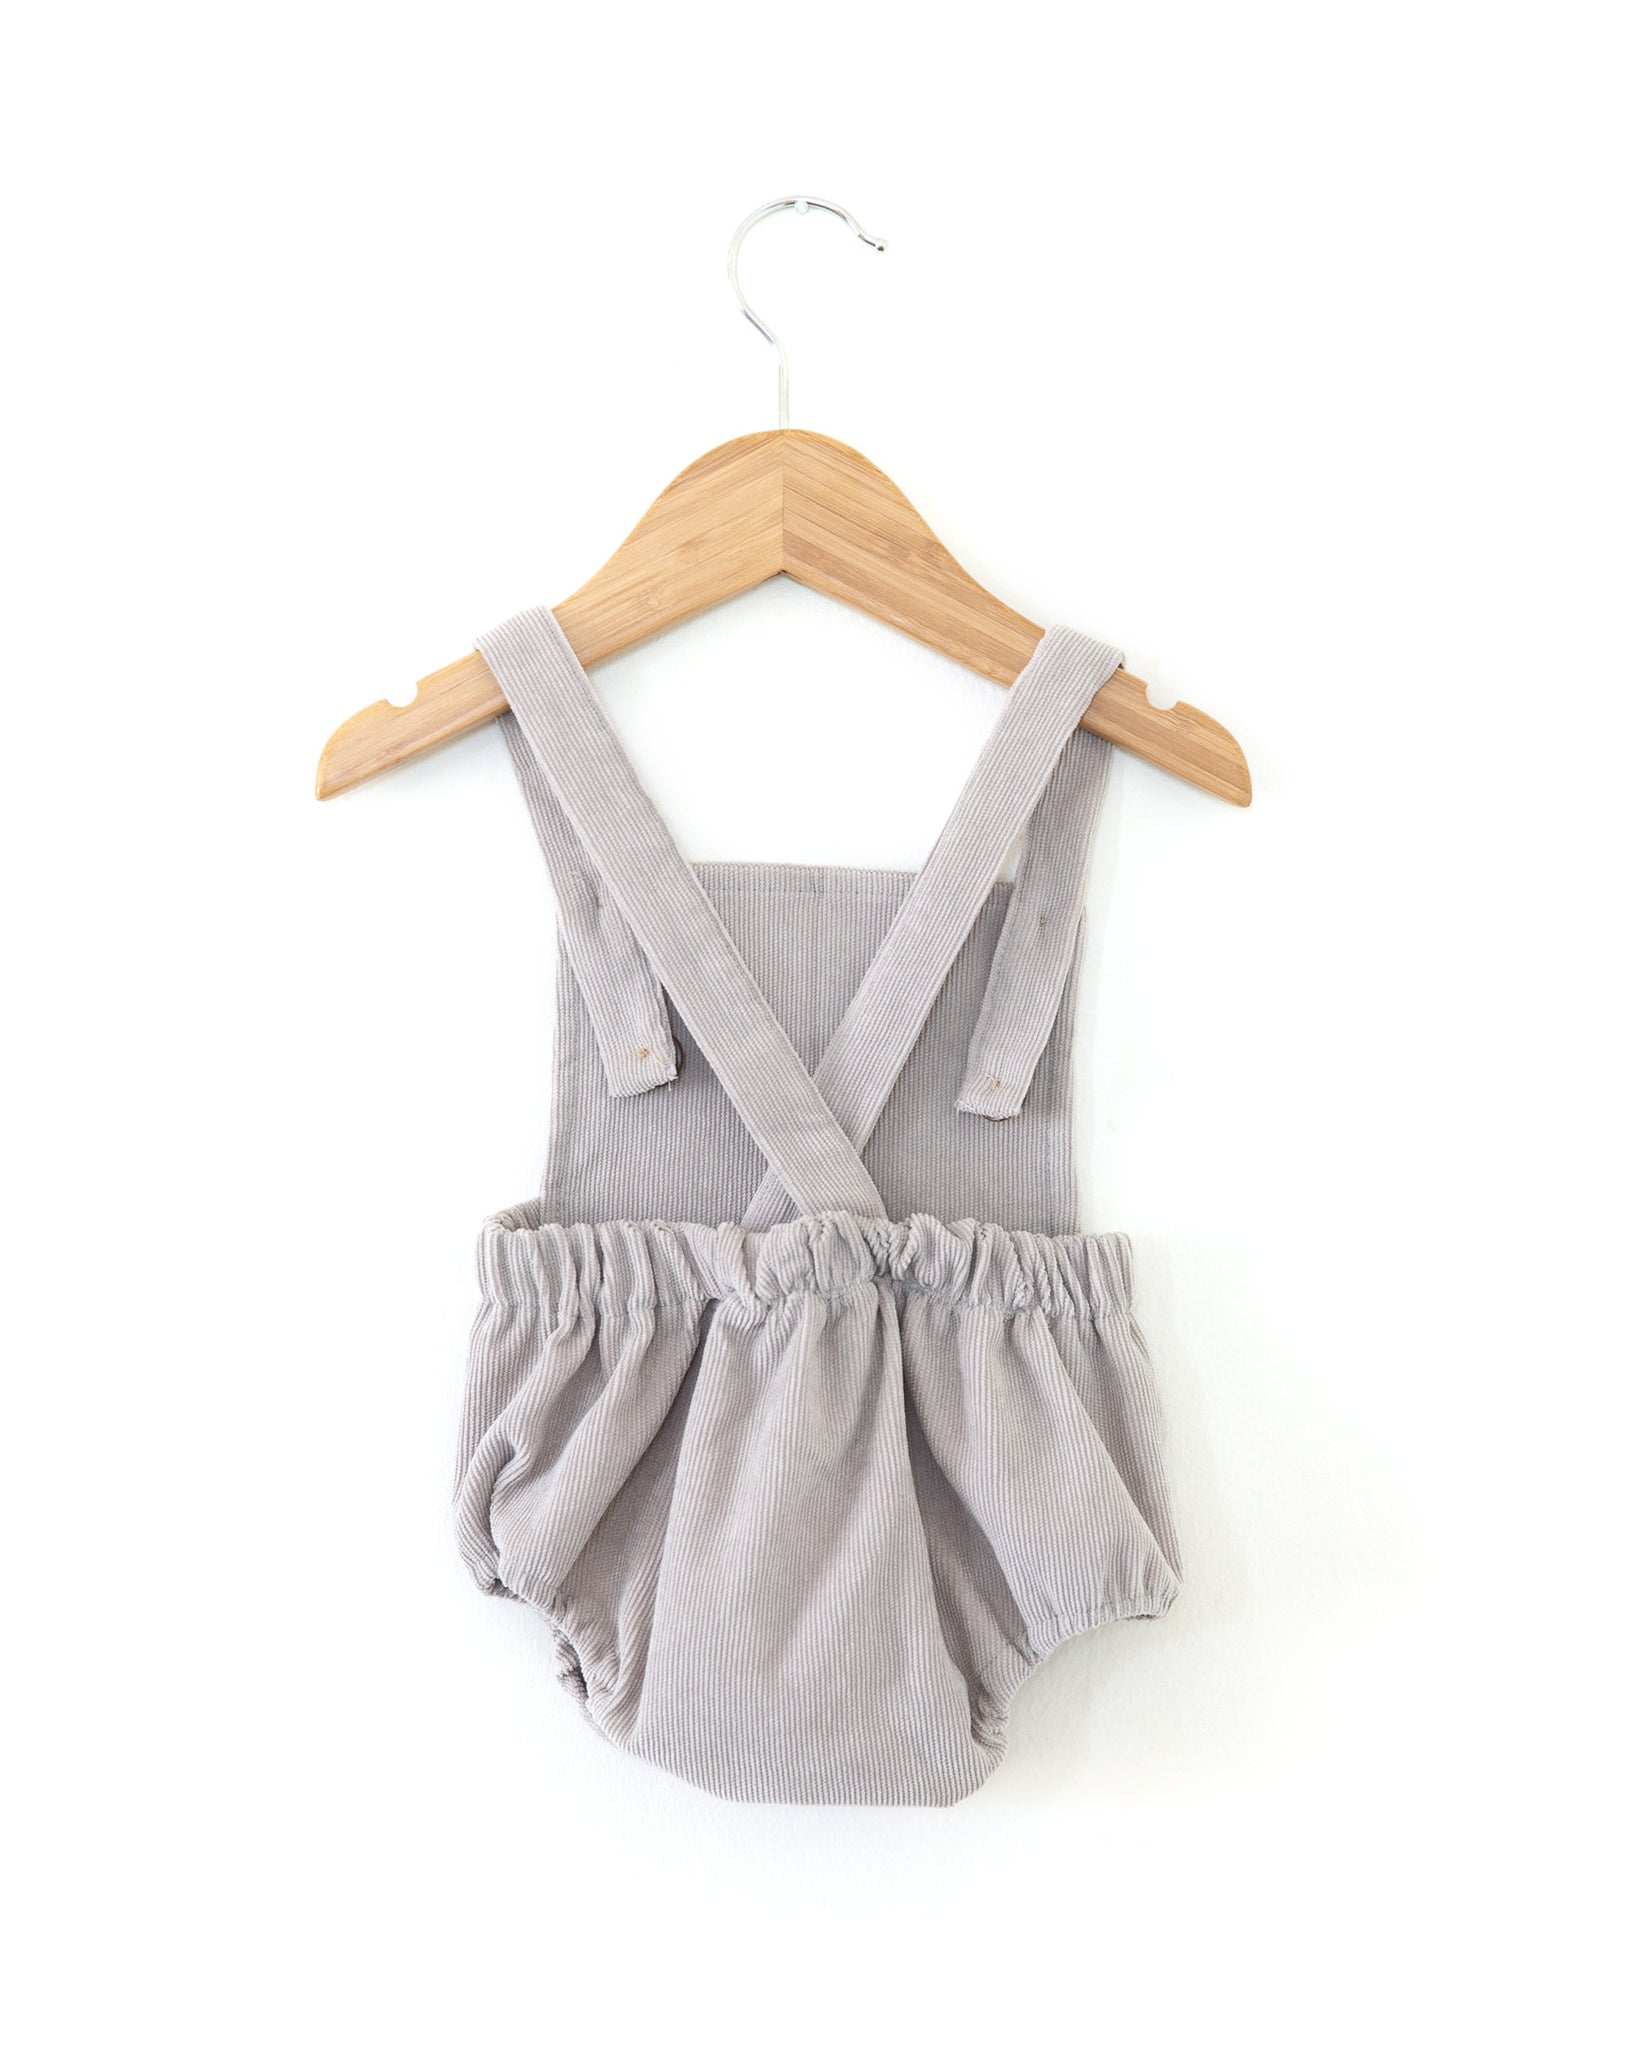 Vintage Corduroy Romper in Gray - Reverie Threads